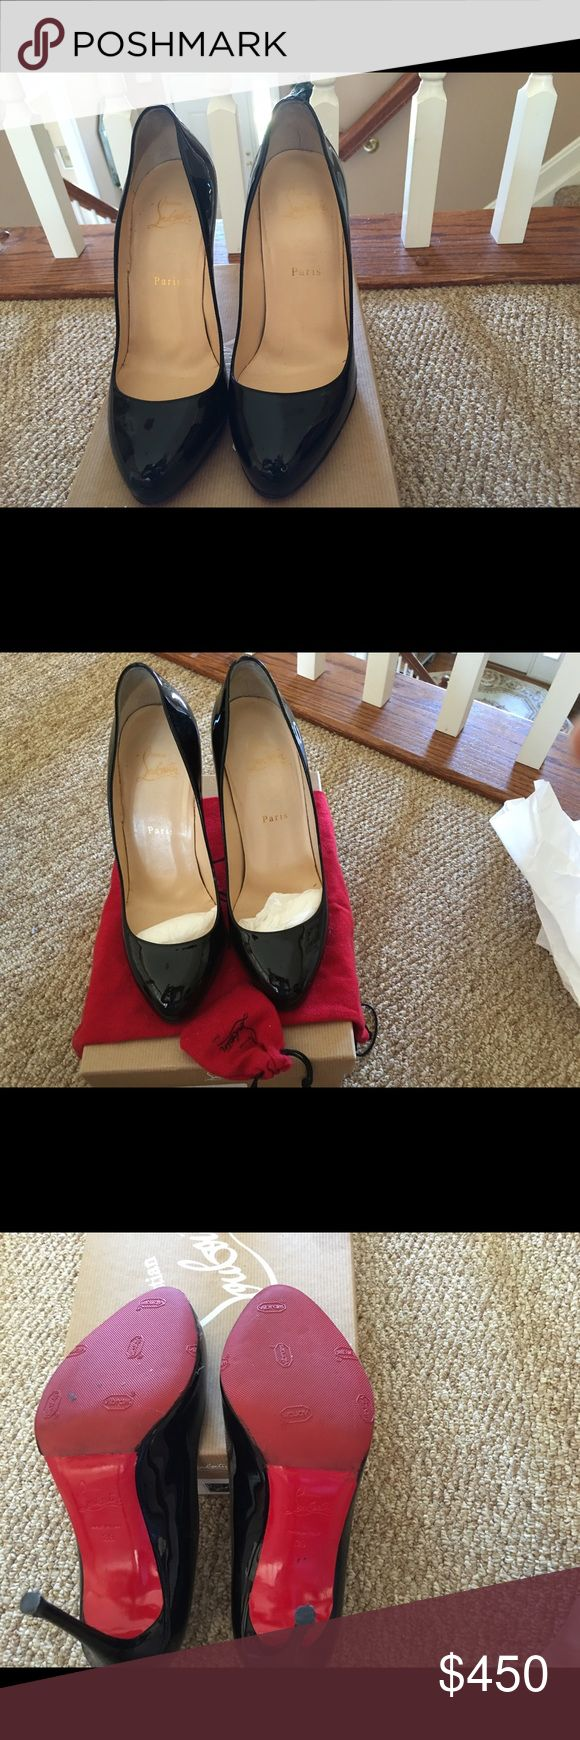 3792c2a7f8bd used christian louboutins for sale red bottoms shoes protecter